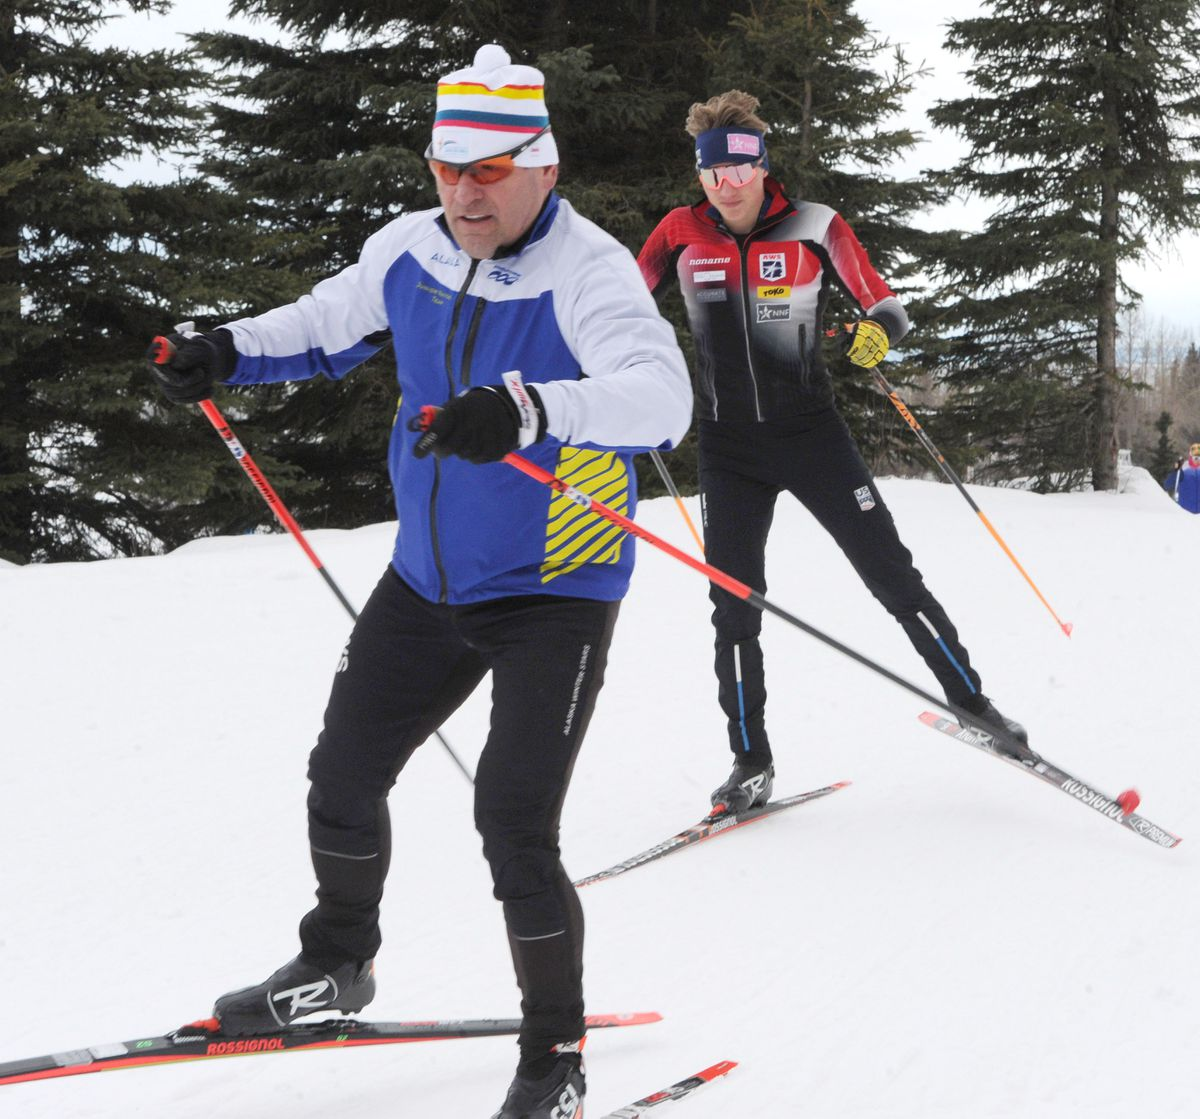 Team Alaska coach Jan Buron, left, and Gus Schumacher test skis at Kincaid Park on March 10 in preparation for the upcoming Junior National nordic championships. (Bill Roth / ADN)